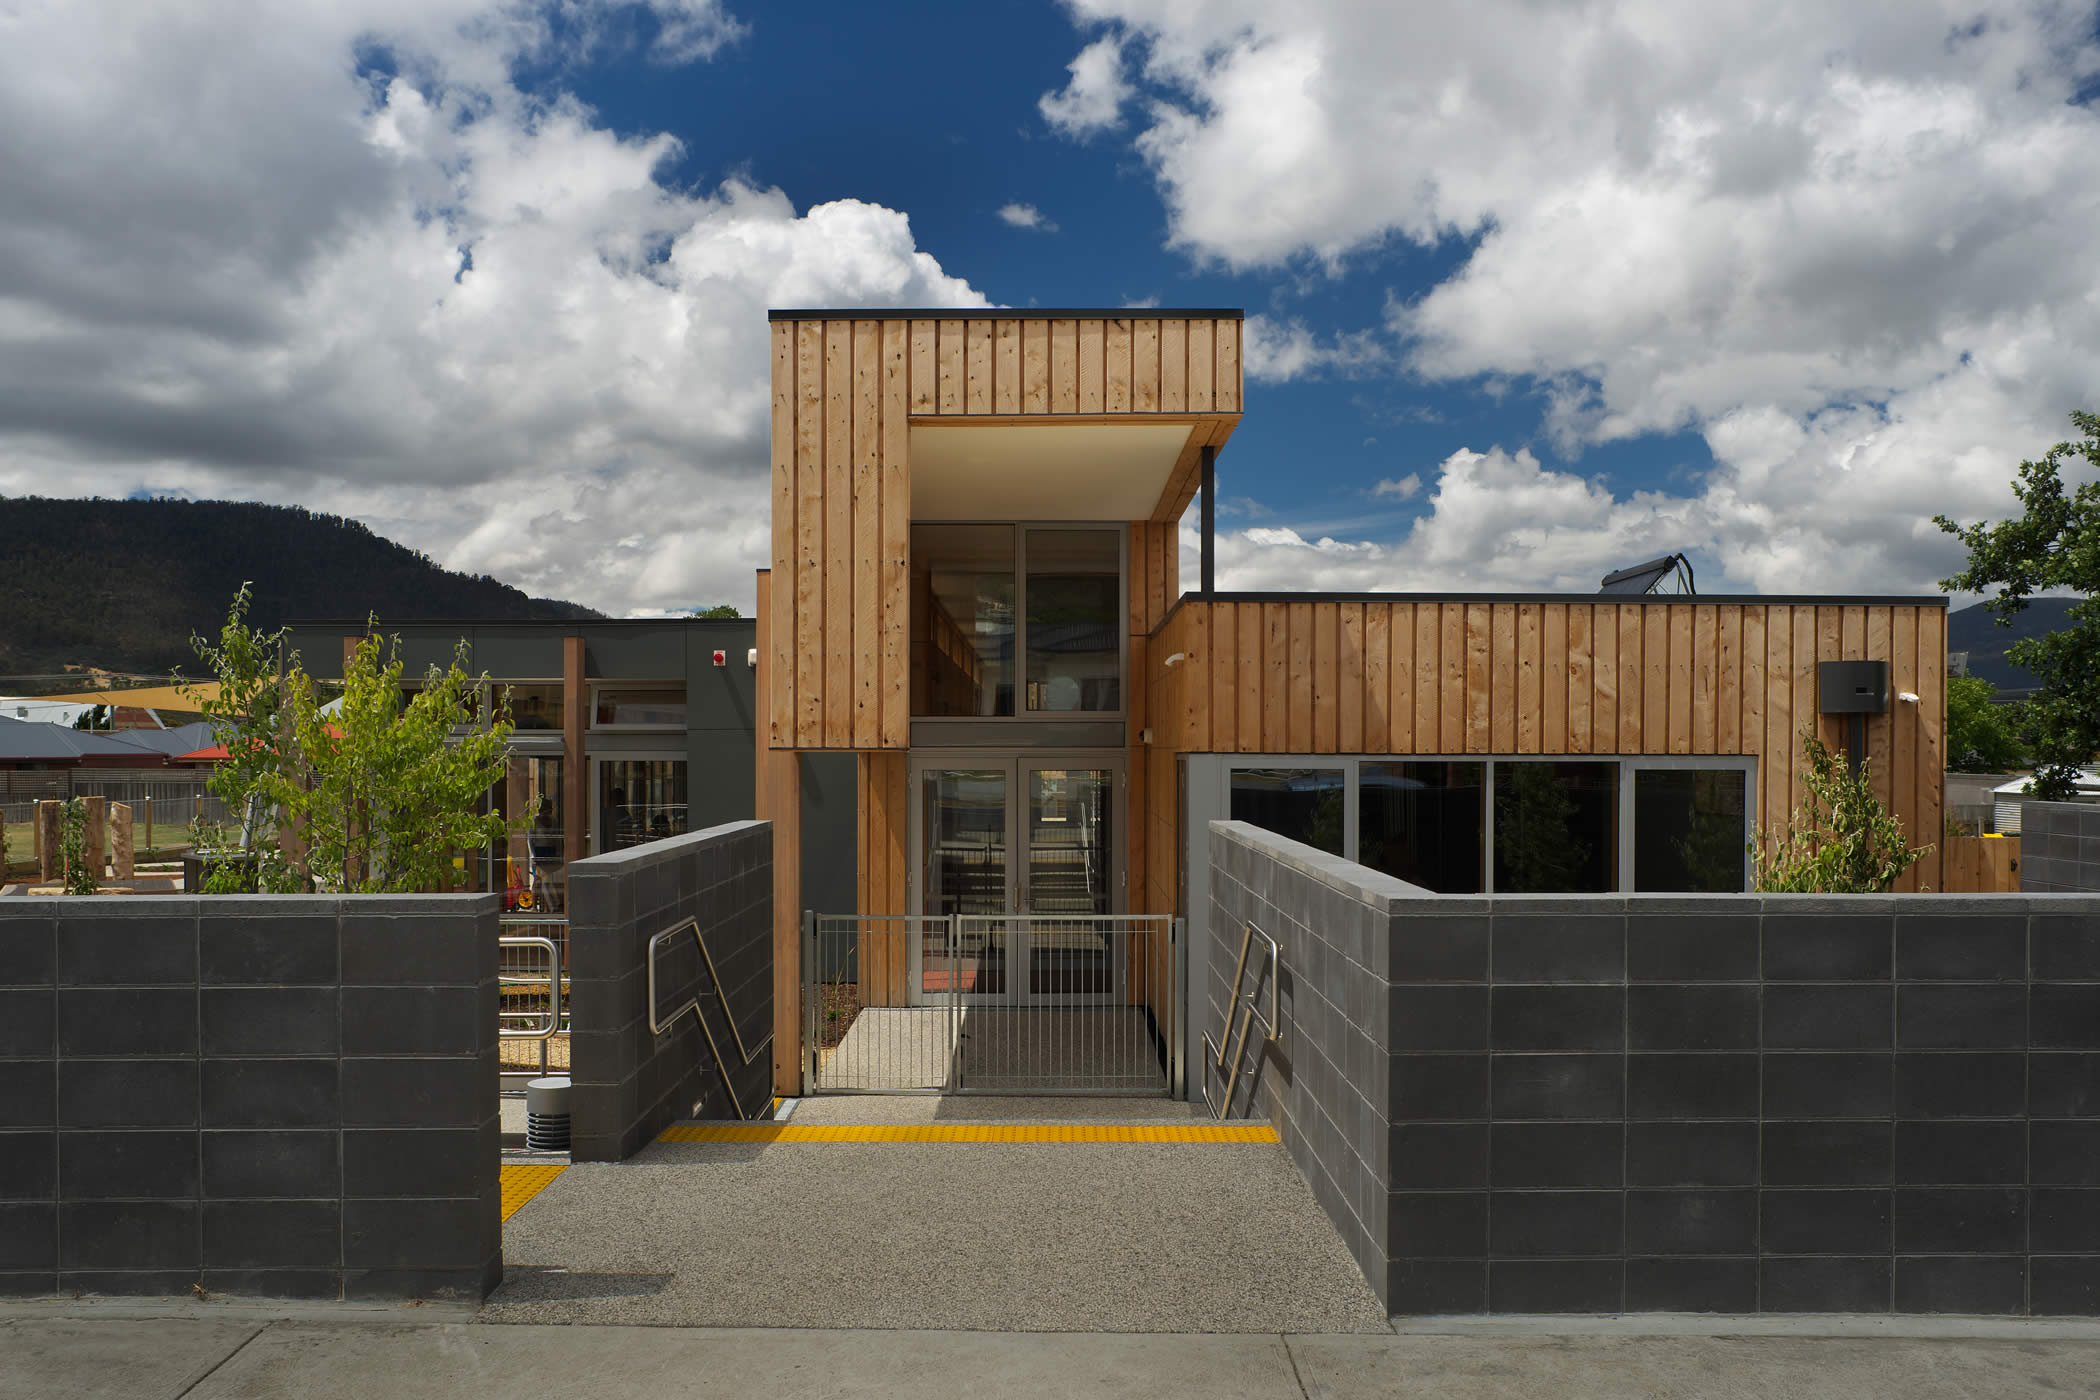 Ptunarra Child and Family Centre, New Norfolk, Tasmania:  The street entrance expresses the interior mezzanine play spine and circulation axis running the building length and introduces the use of external vertical timber cladding. Photo by Ray Joyce.